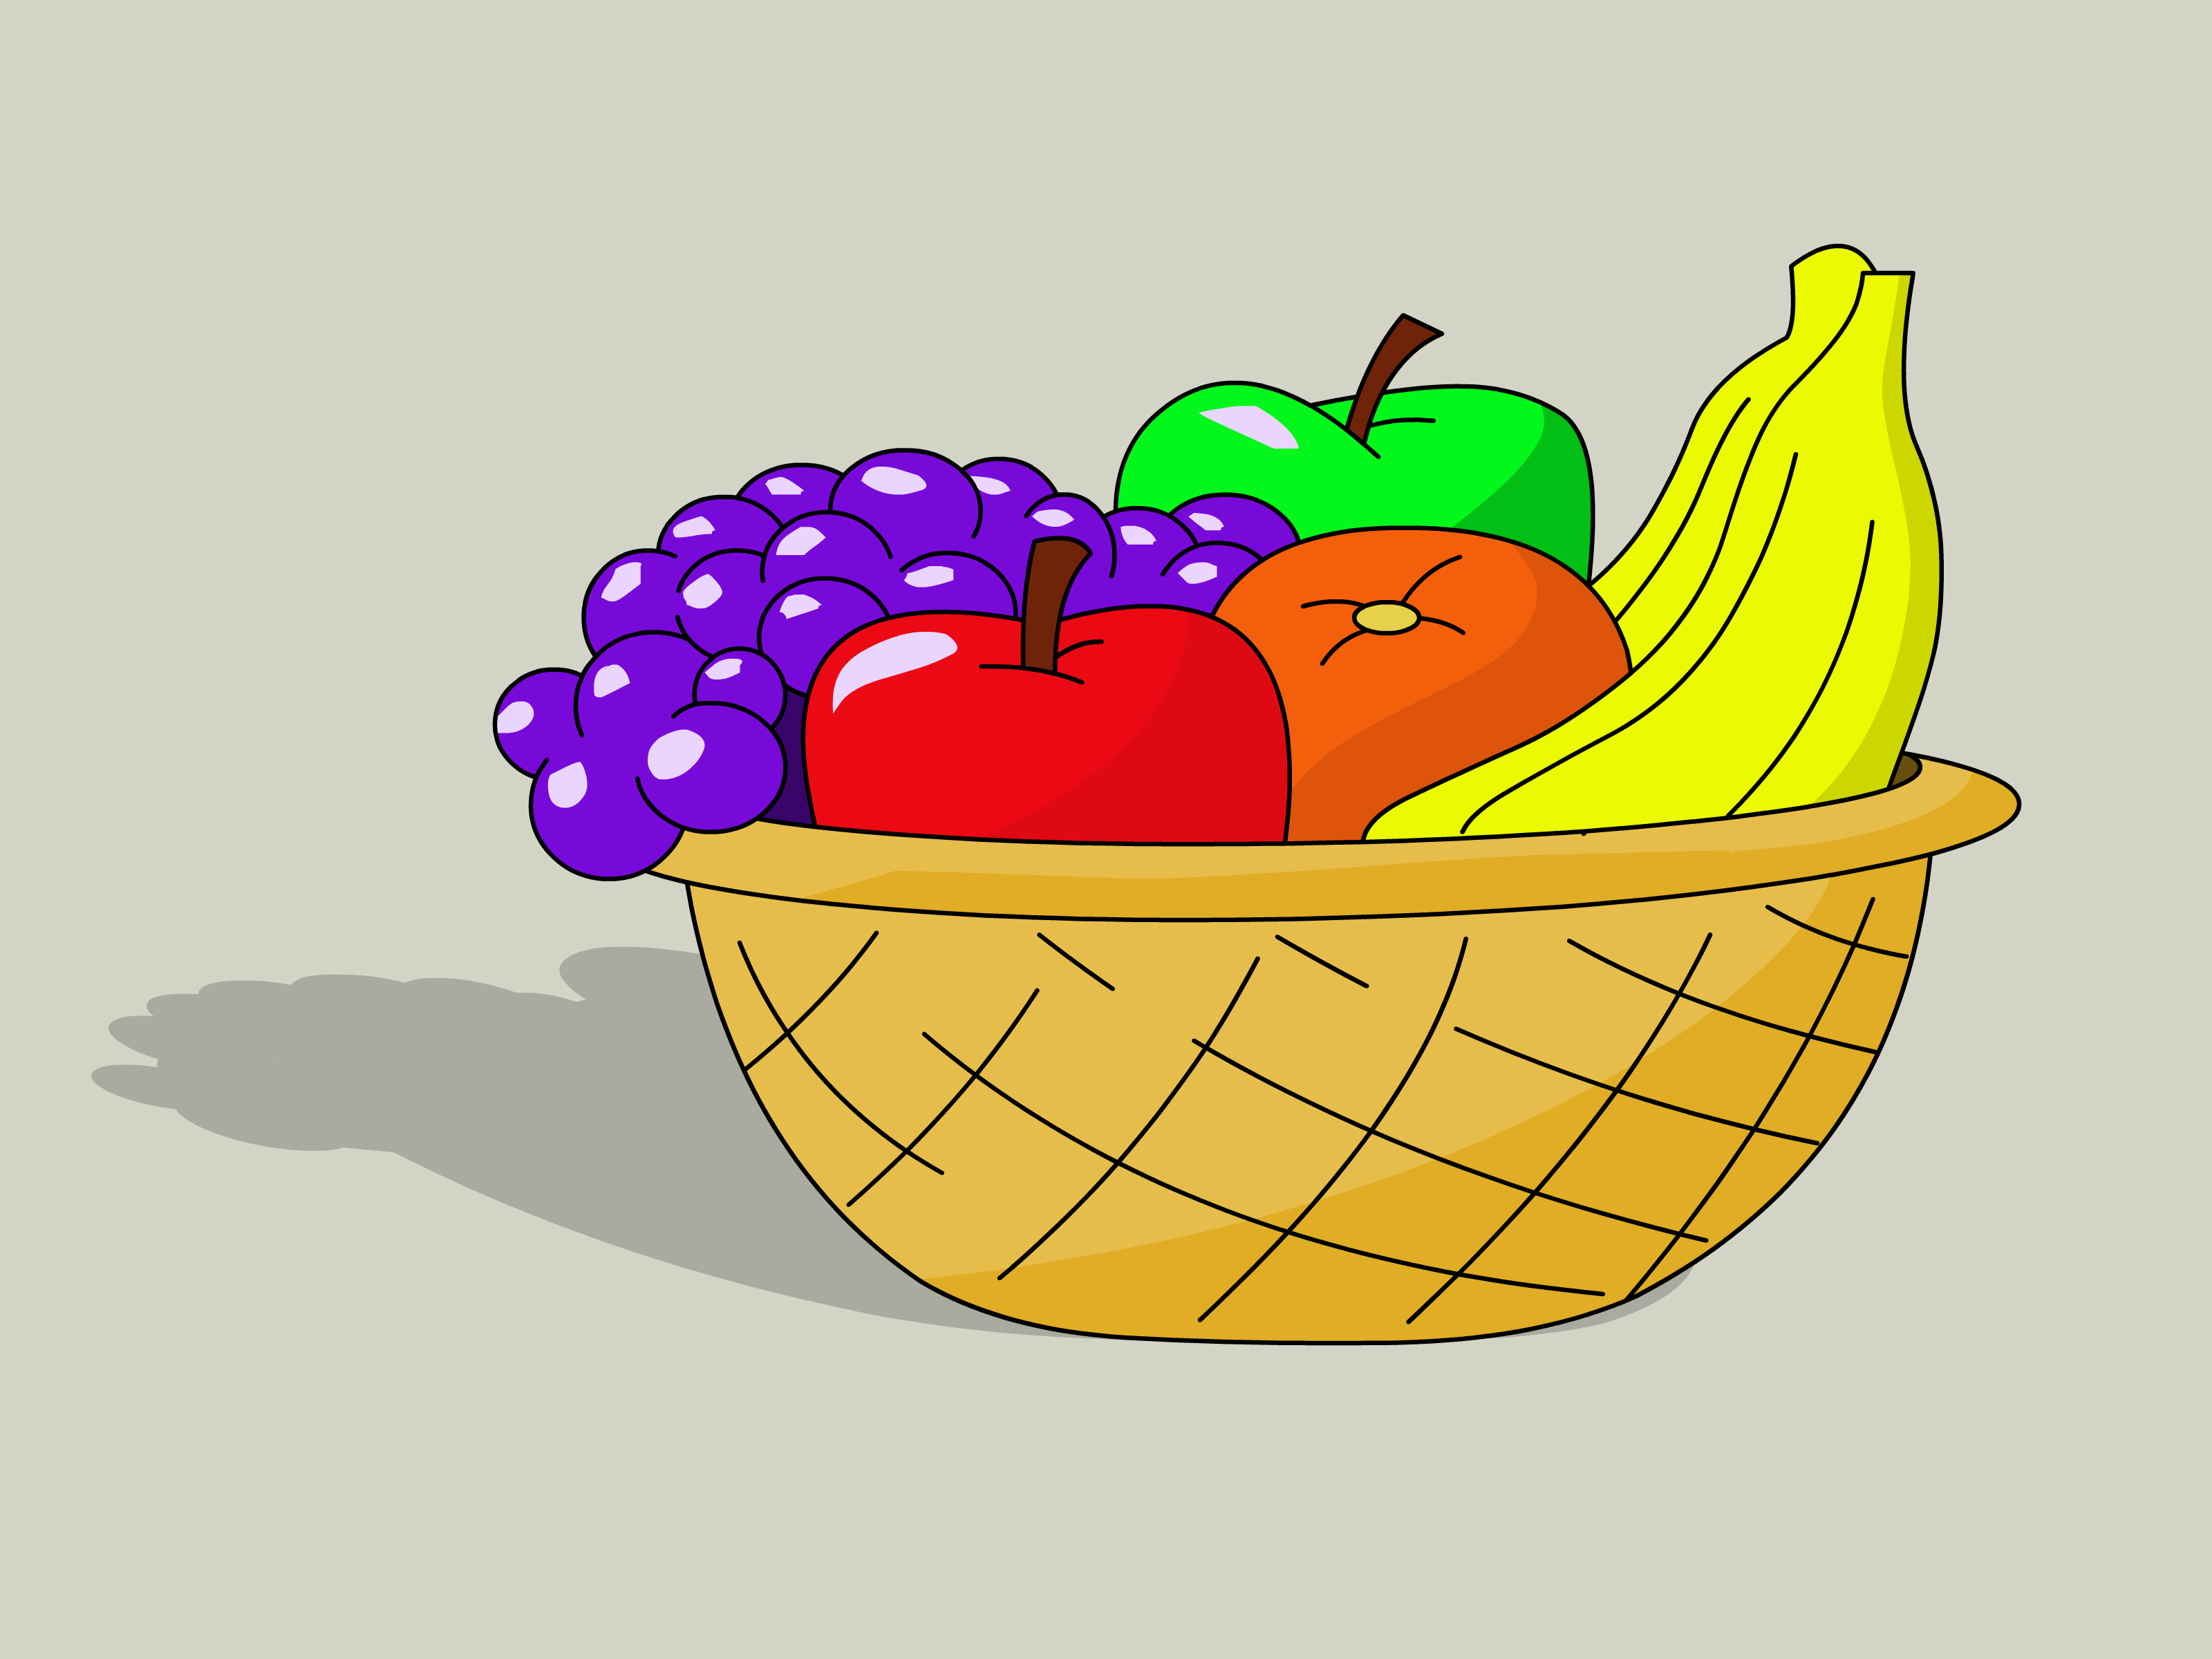 Drawn vegetables fruit and vegetable Of Fruit: How  wikiHow